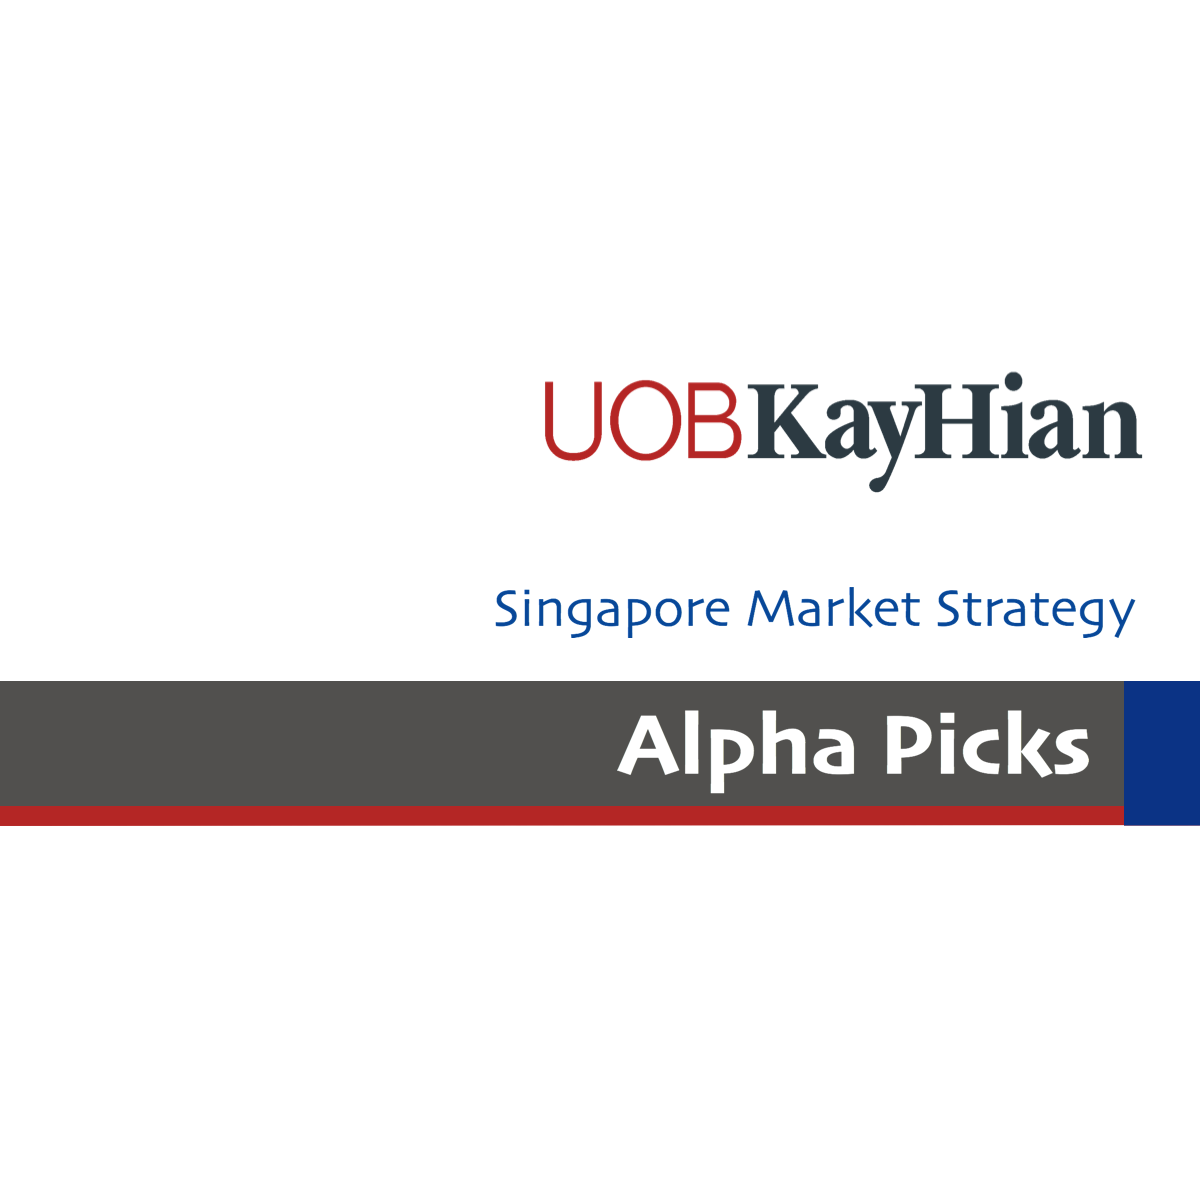 Singapore Stock Alpha Picks - UOB Kay Hian 2017-09-05: Updating Picks For September